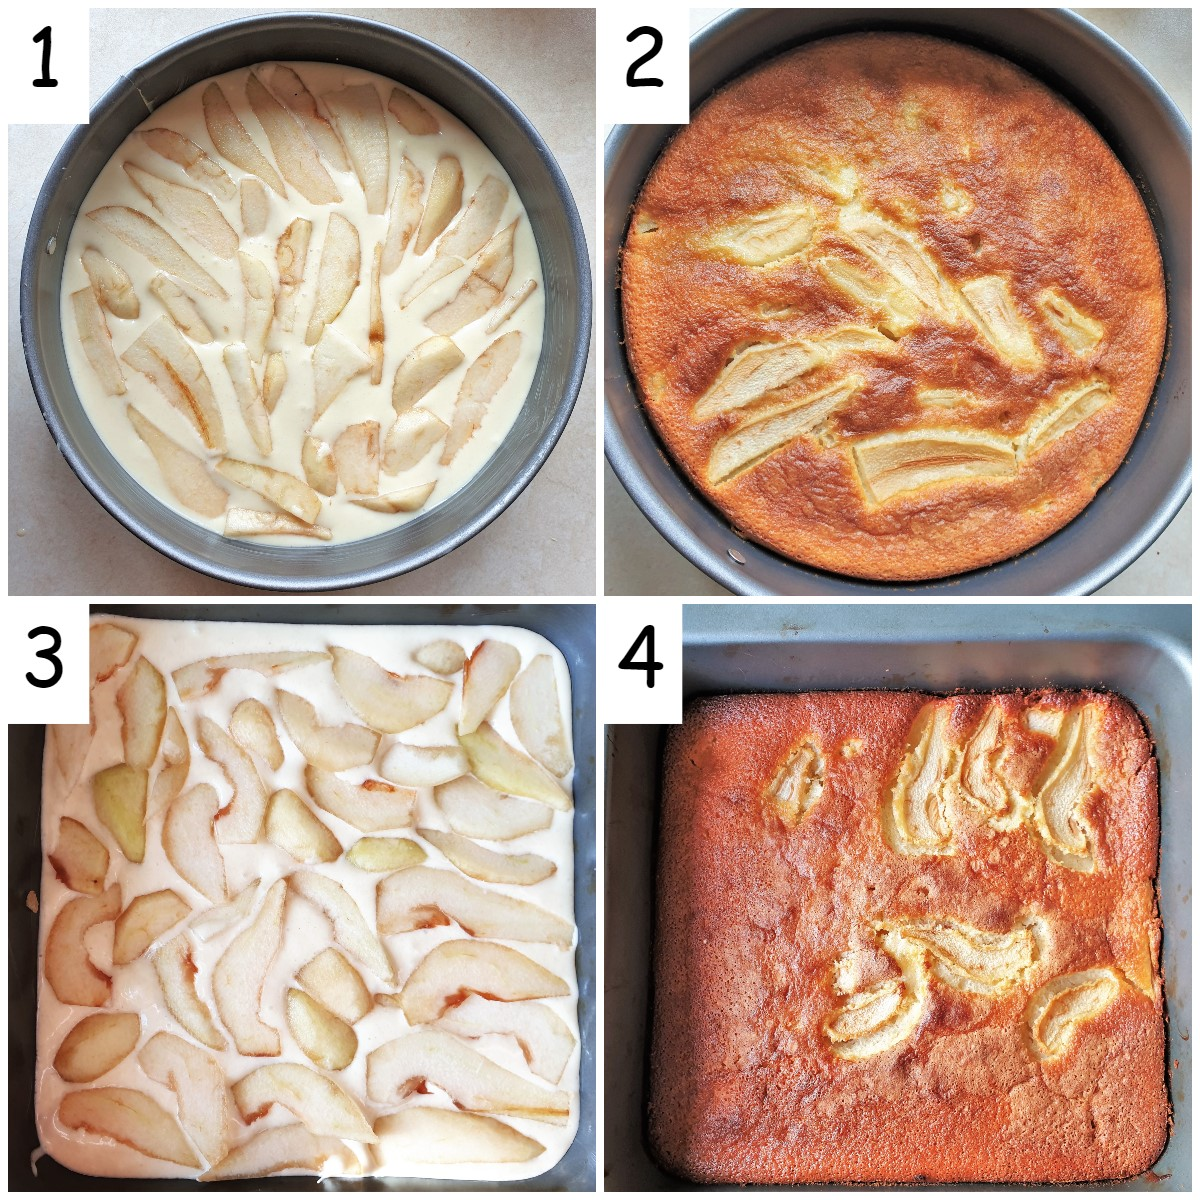 Collage of 4 images showing a round pear cake and a square pear cake in baking tins.